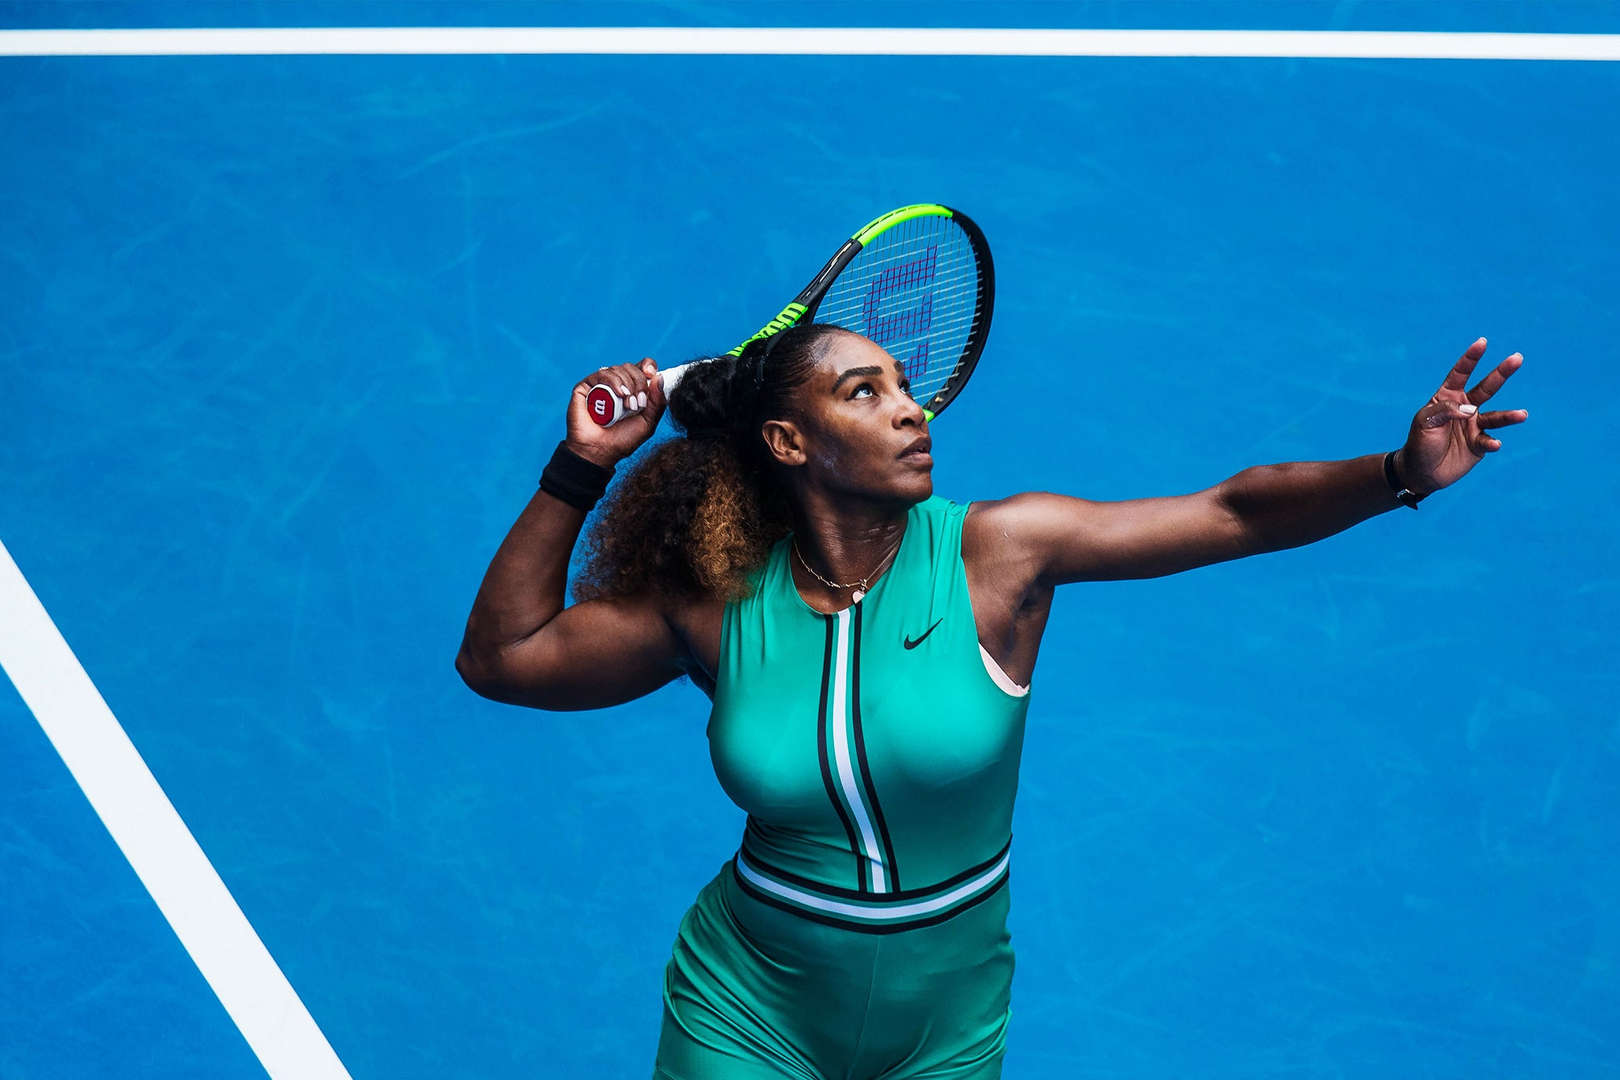 Serena Williams picture.